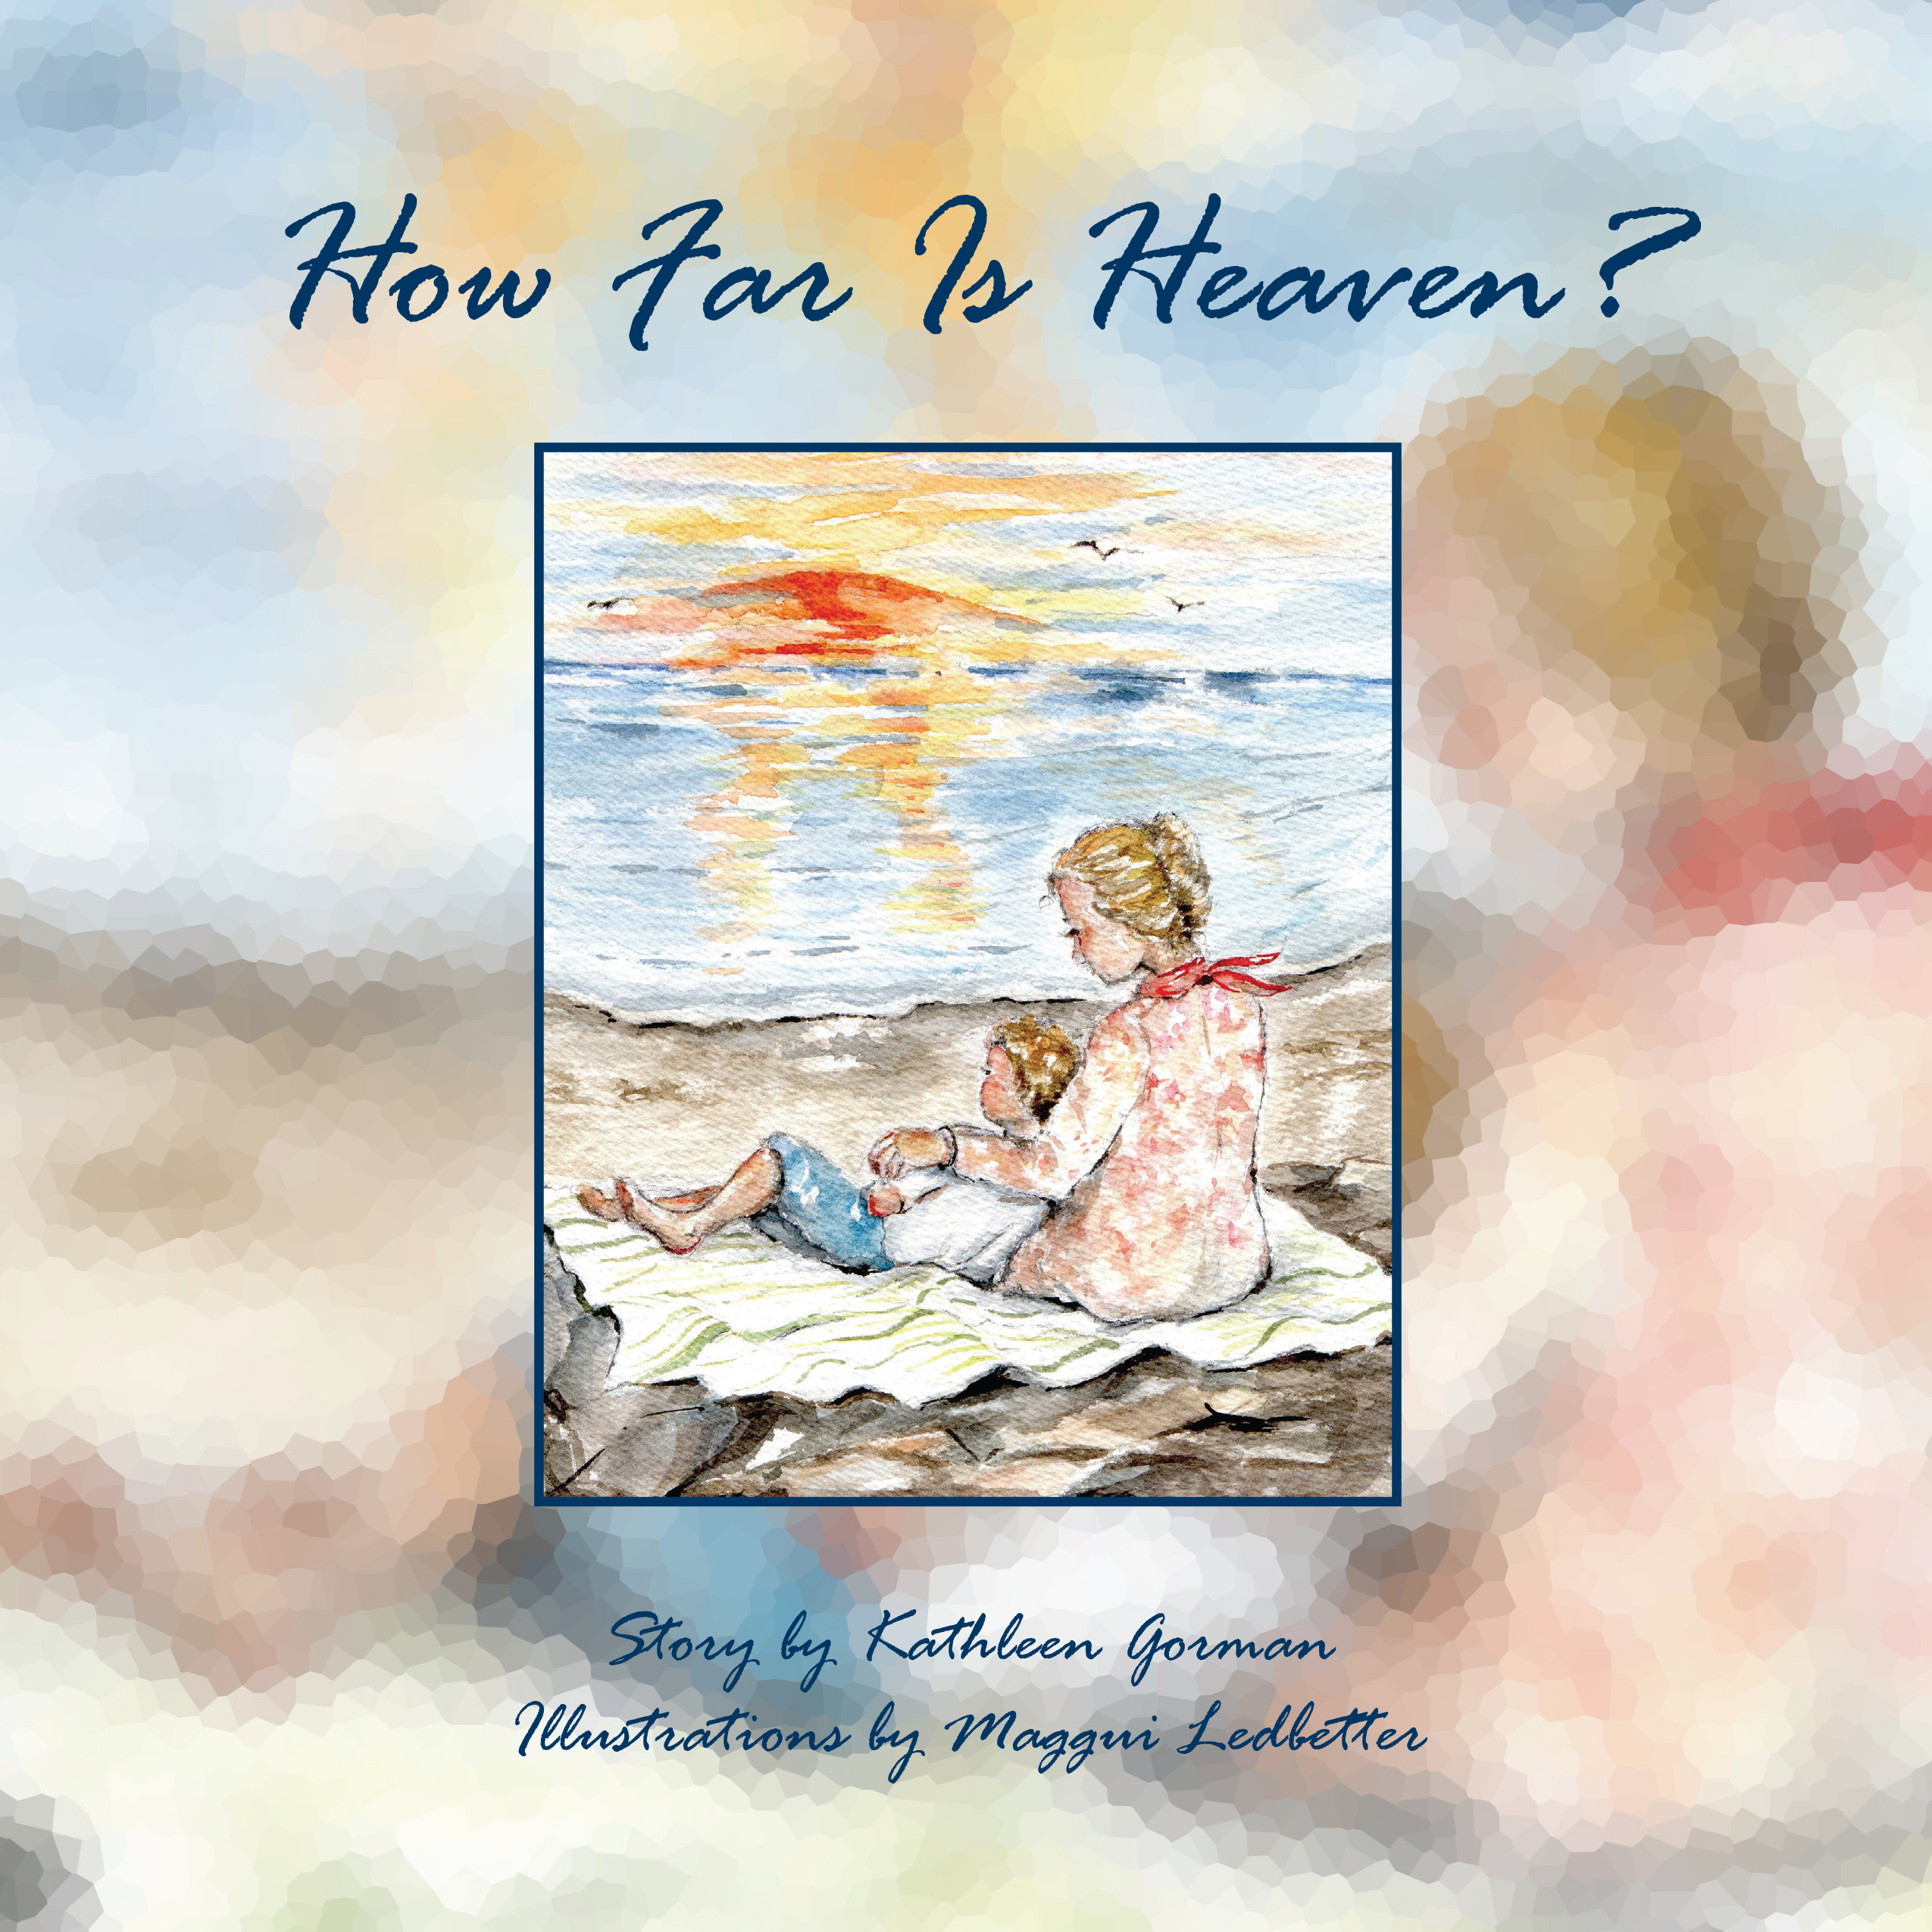 How Far is Heaven - Cover 10x10.indd